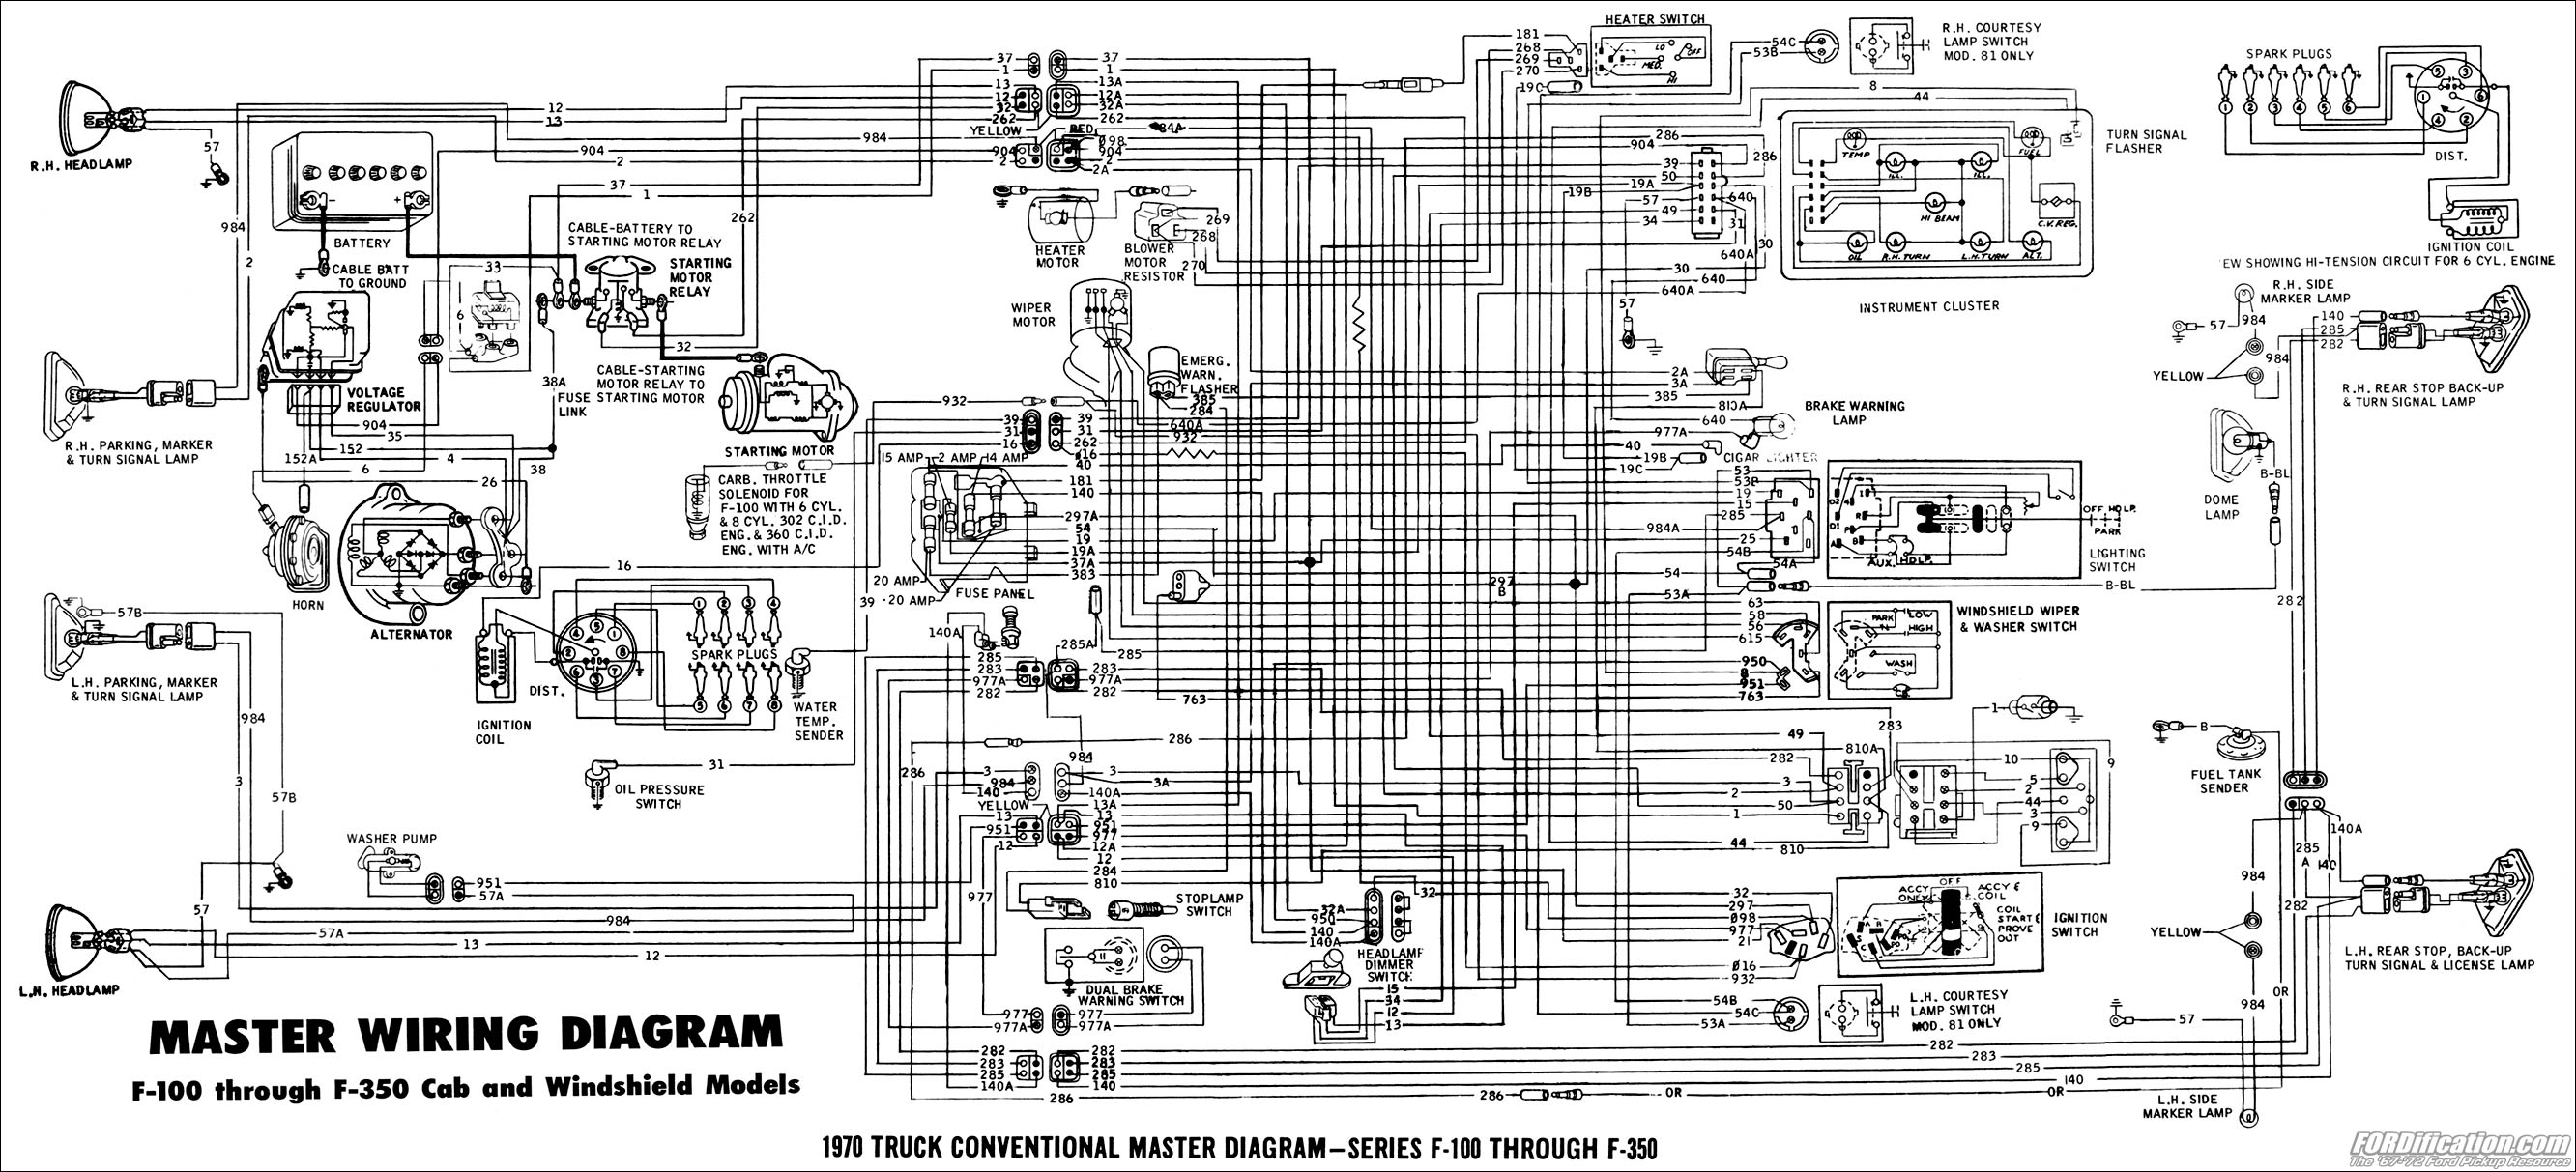 1989 Ford F 150 Trailer Wiring Harness Diagrams Library Diagram F250 1970 250 Opinions About U2022 Brake Warning Light